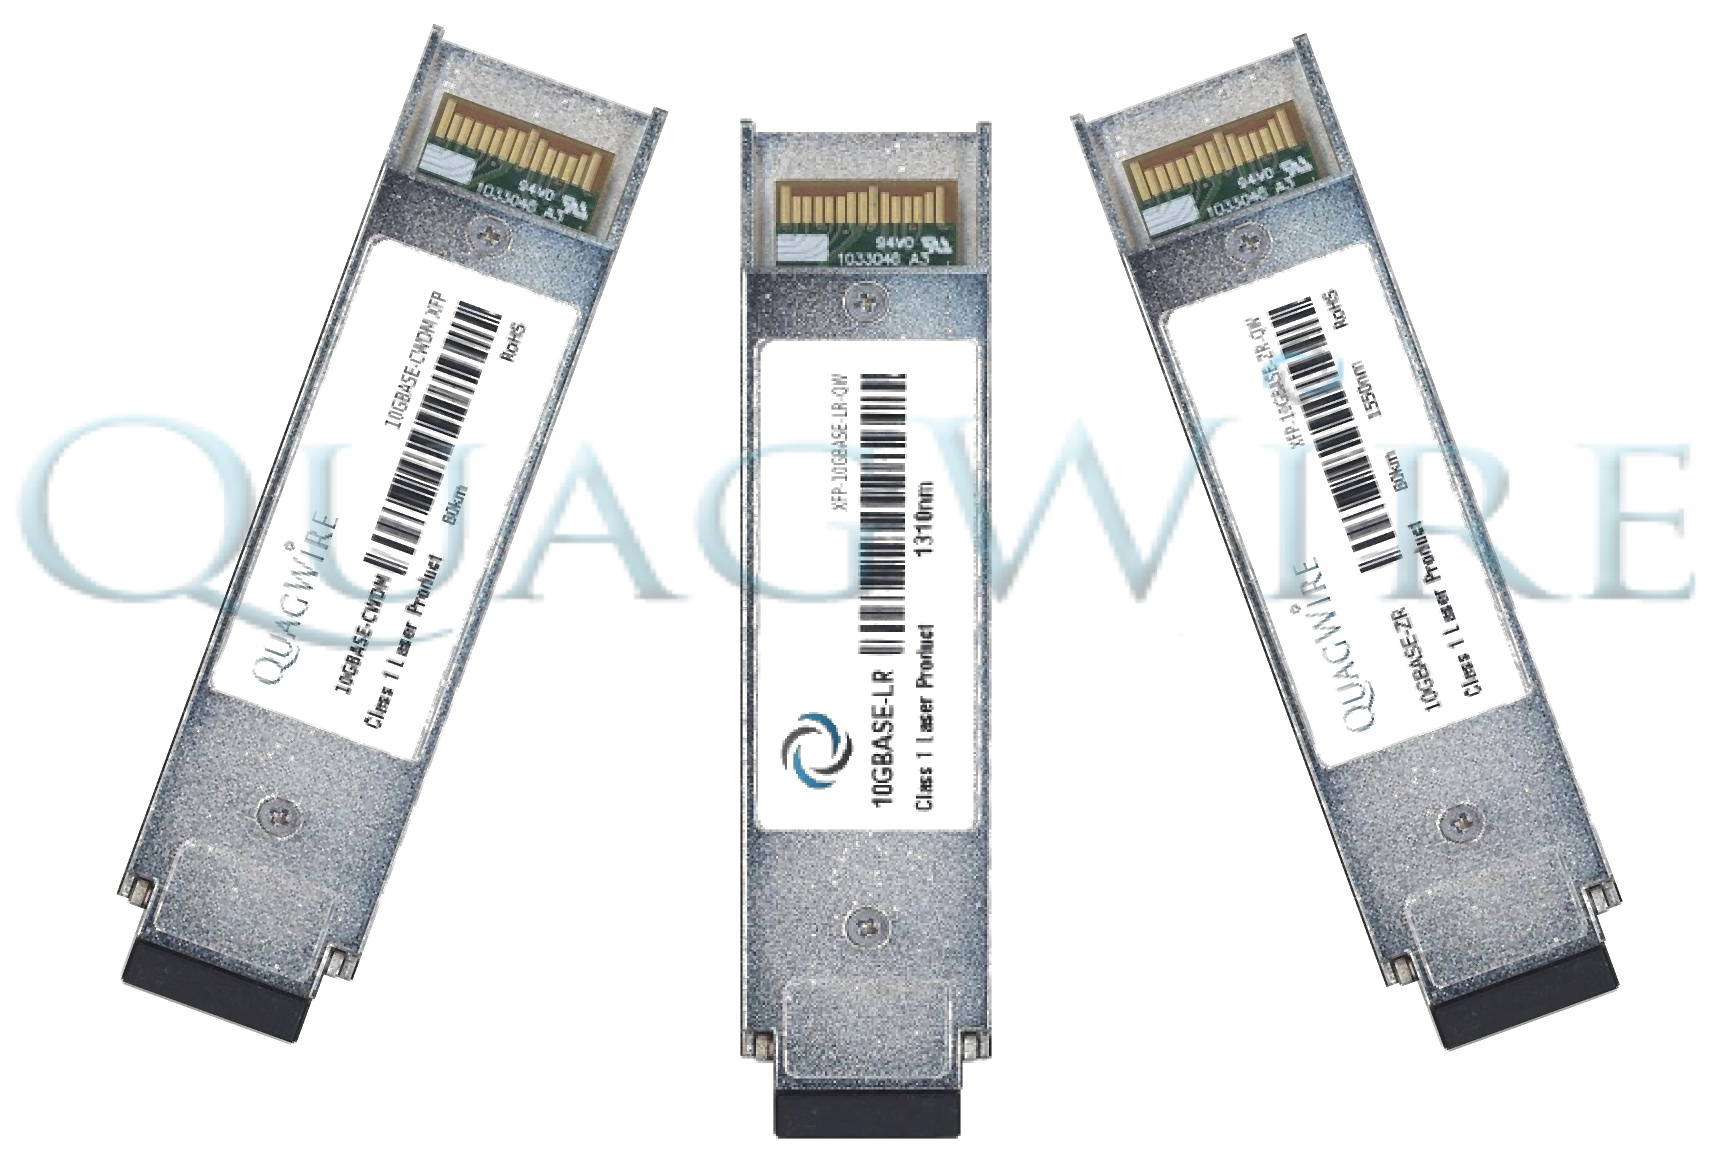 DWDM-XFP-50.12 – Cisco Compatible DWDM XFP Transceiver